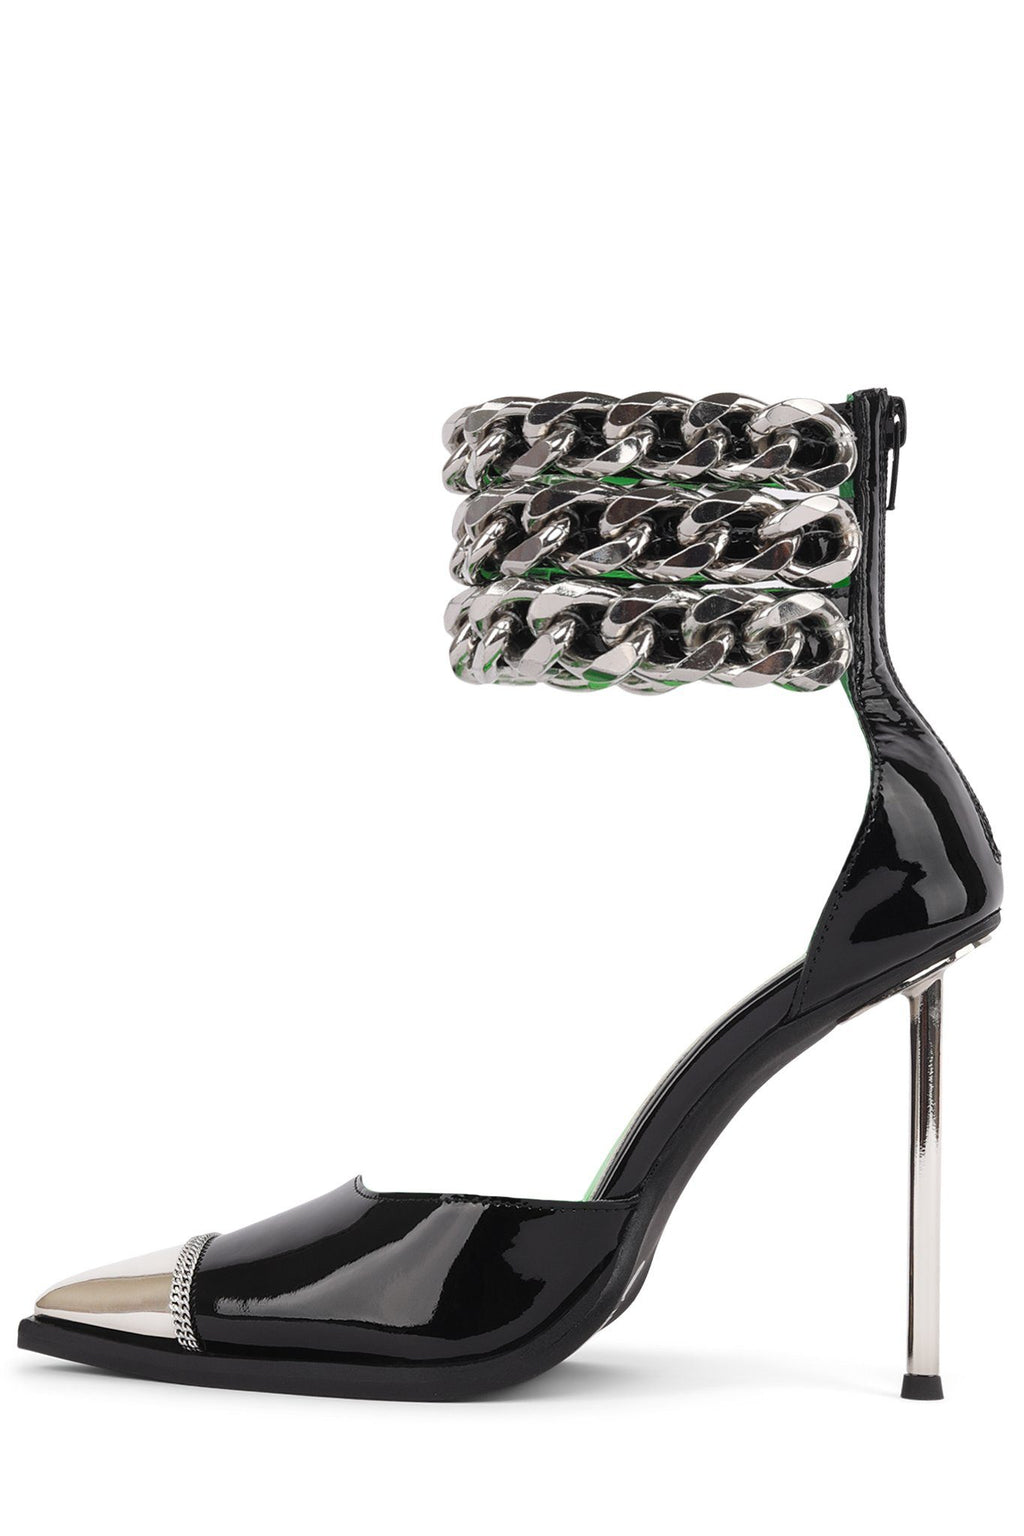 GOVERNER-C Pump YYH Black Patent Silver 6